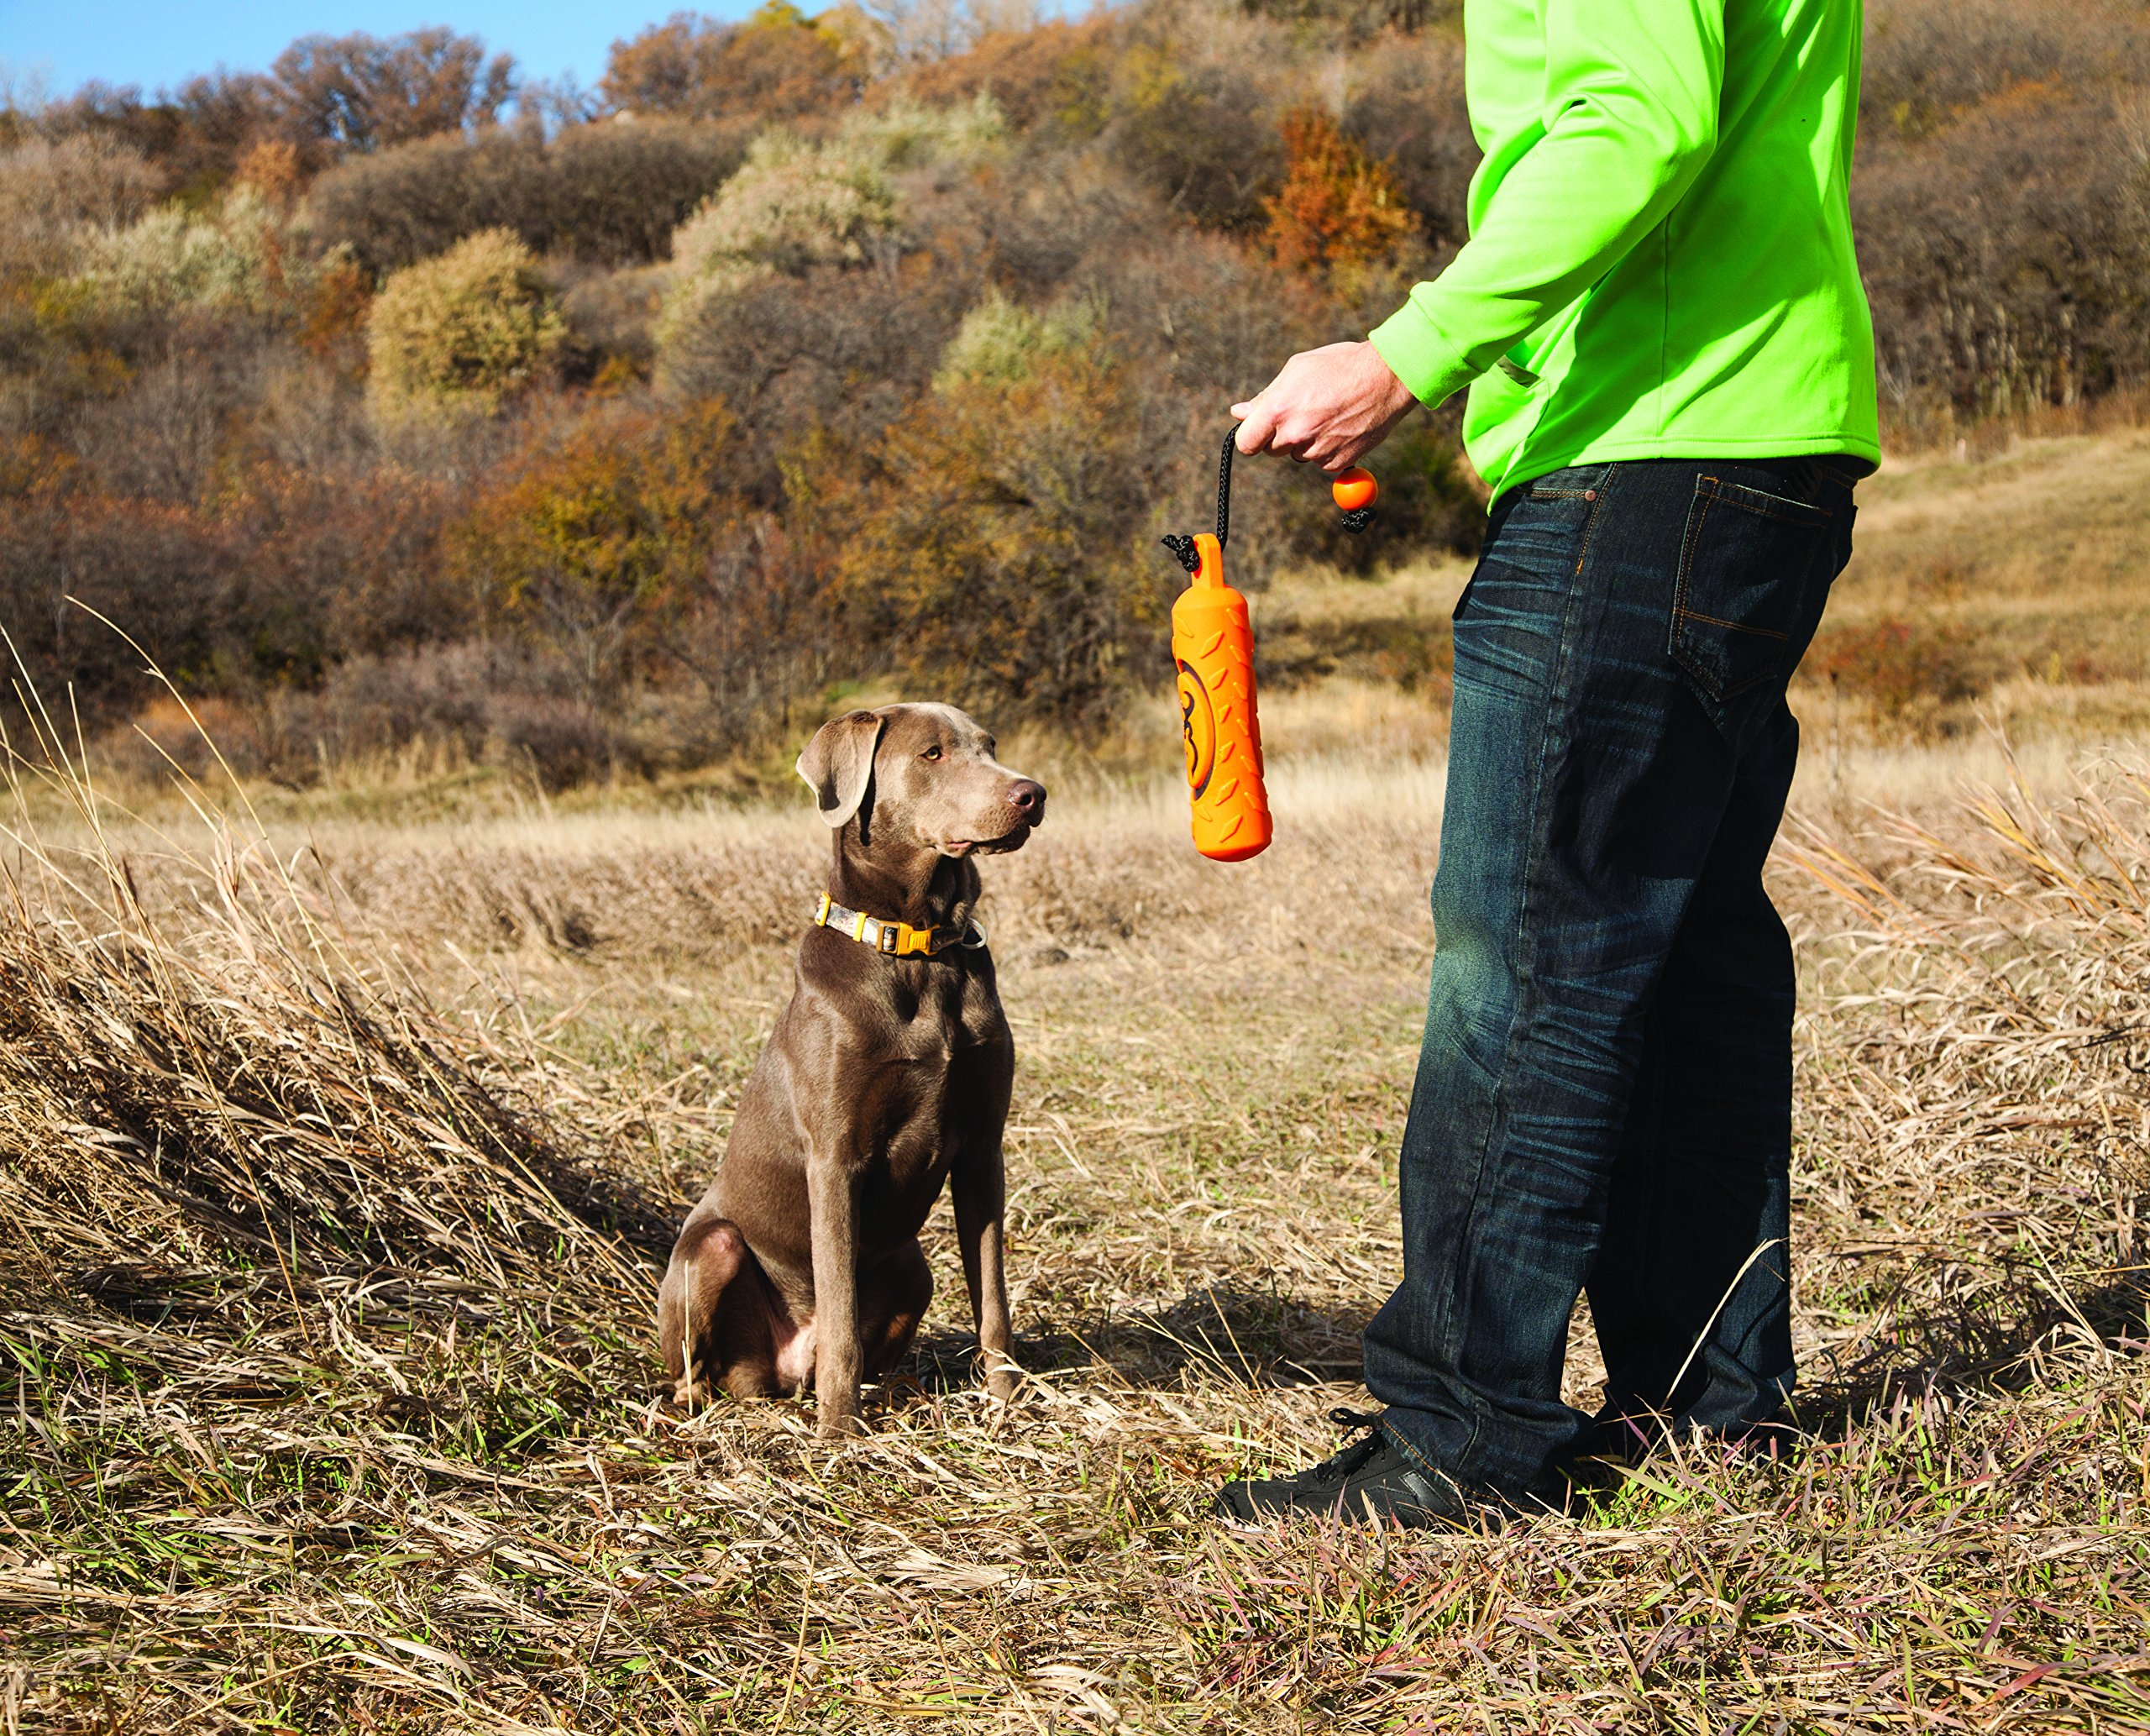 Browning Vinyl Training Dummy Hunting Dog Training Dummy, Vinyl, Orange, Large